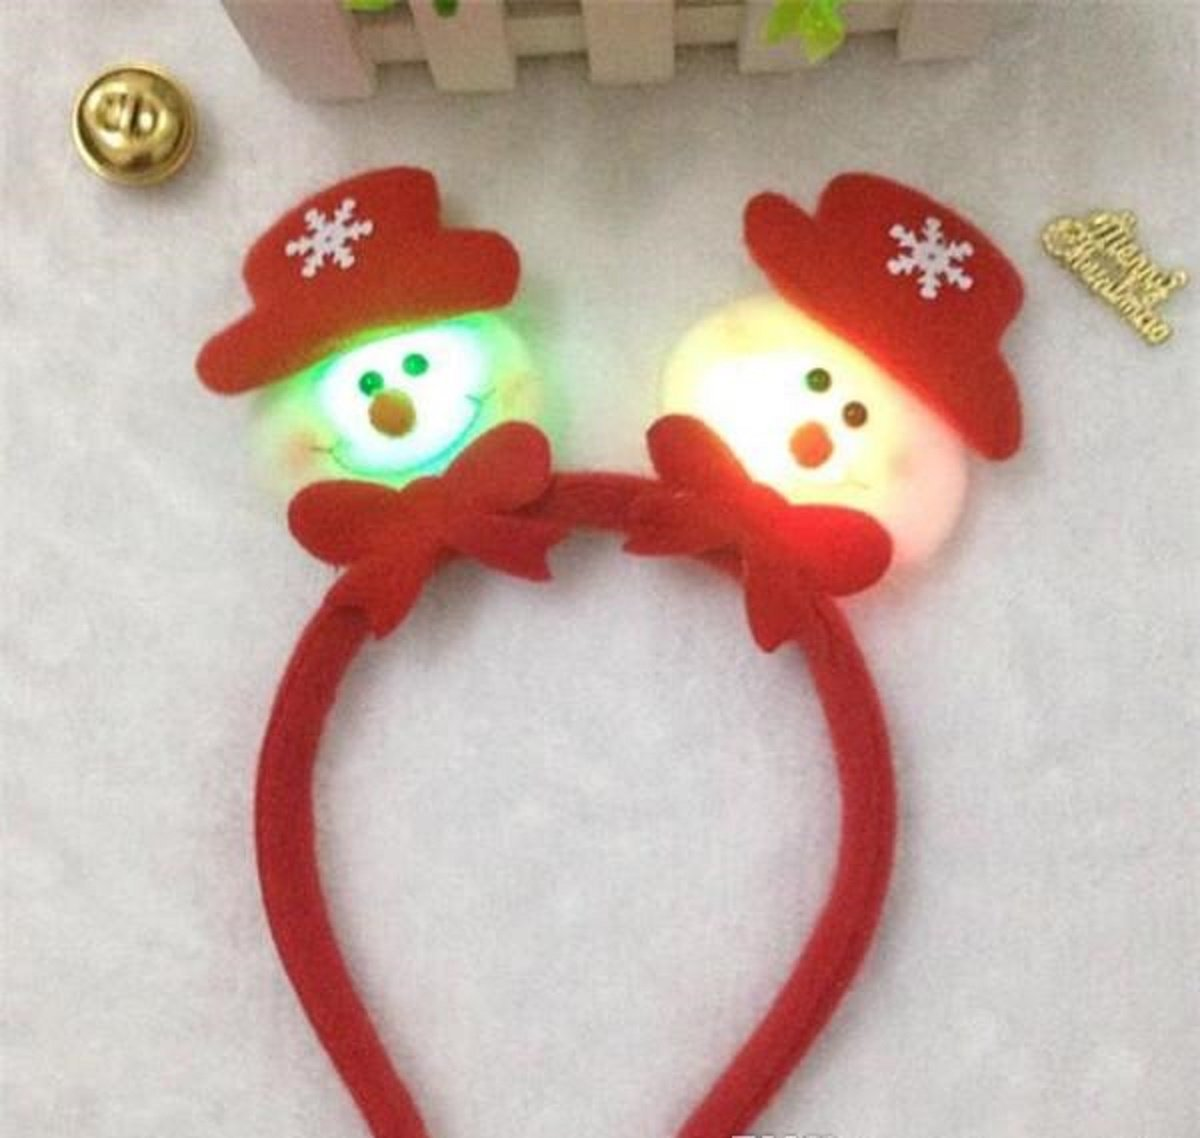 LED Light Hair Band Headband - One item with random color or design